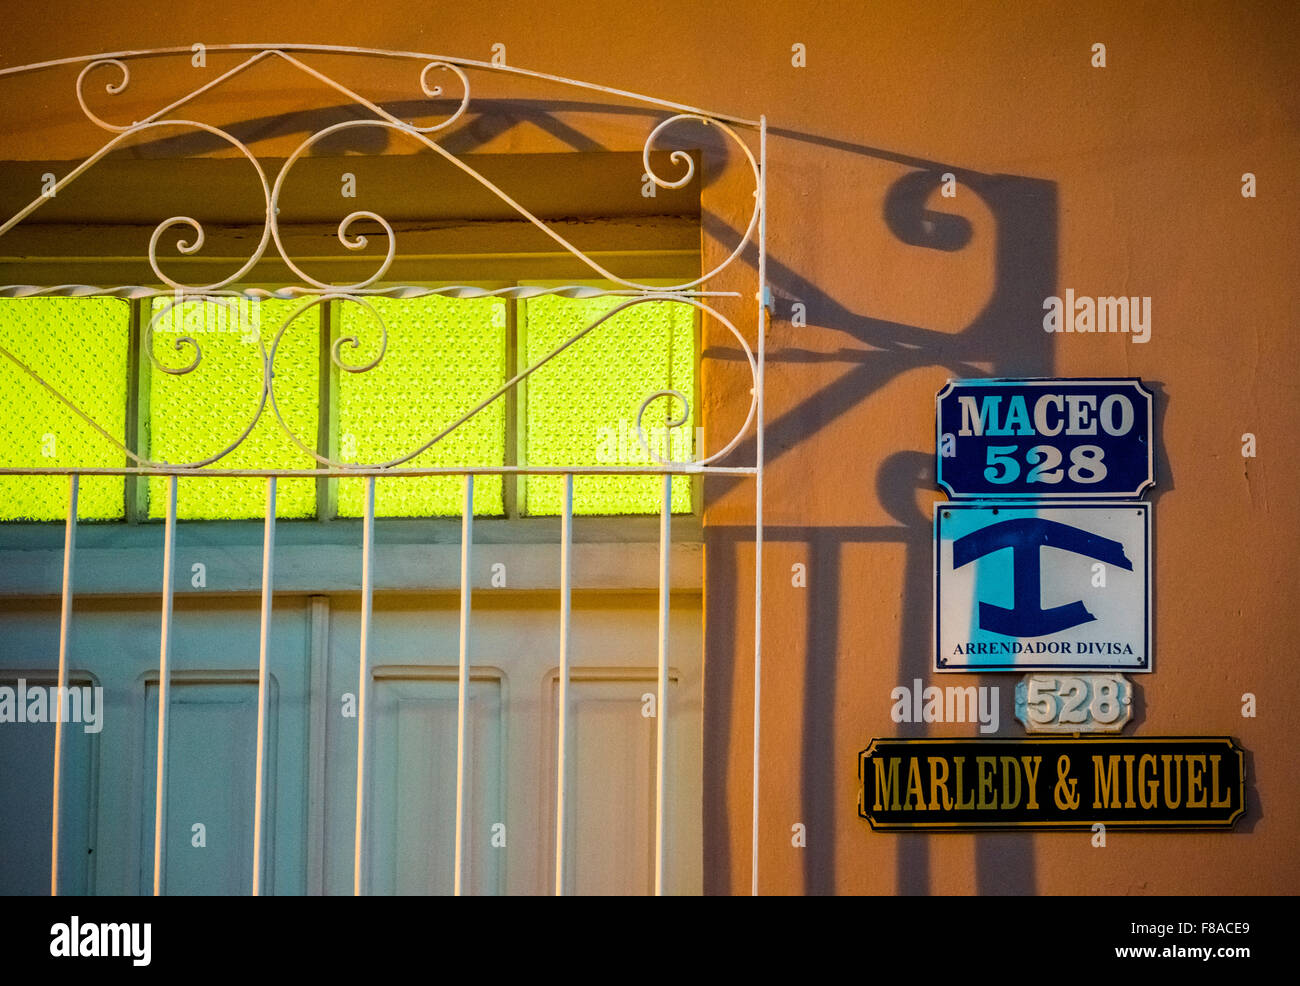 Street signs saying private accommodation for tourists a Casa paricular, in the old town of Trinidad, Street scene - Stock Image